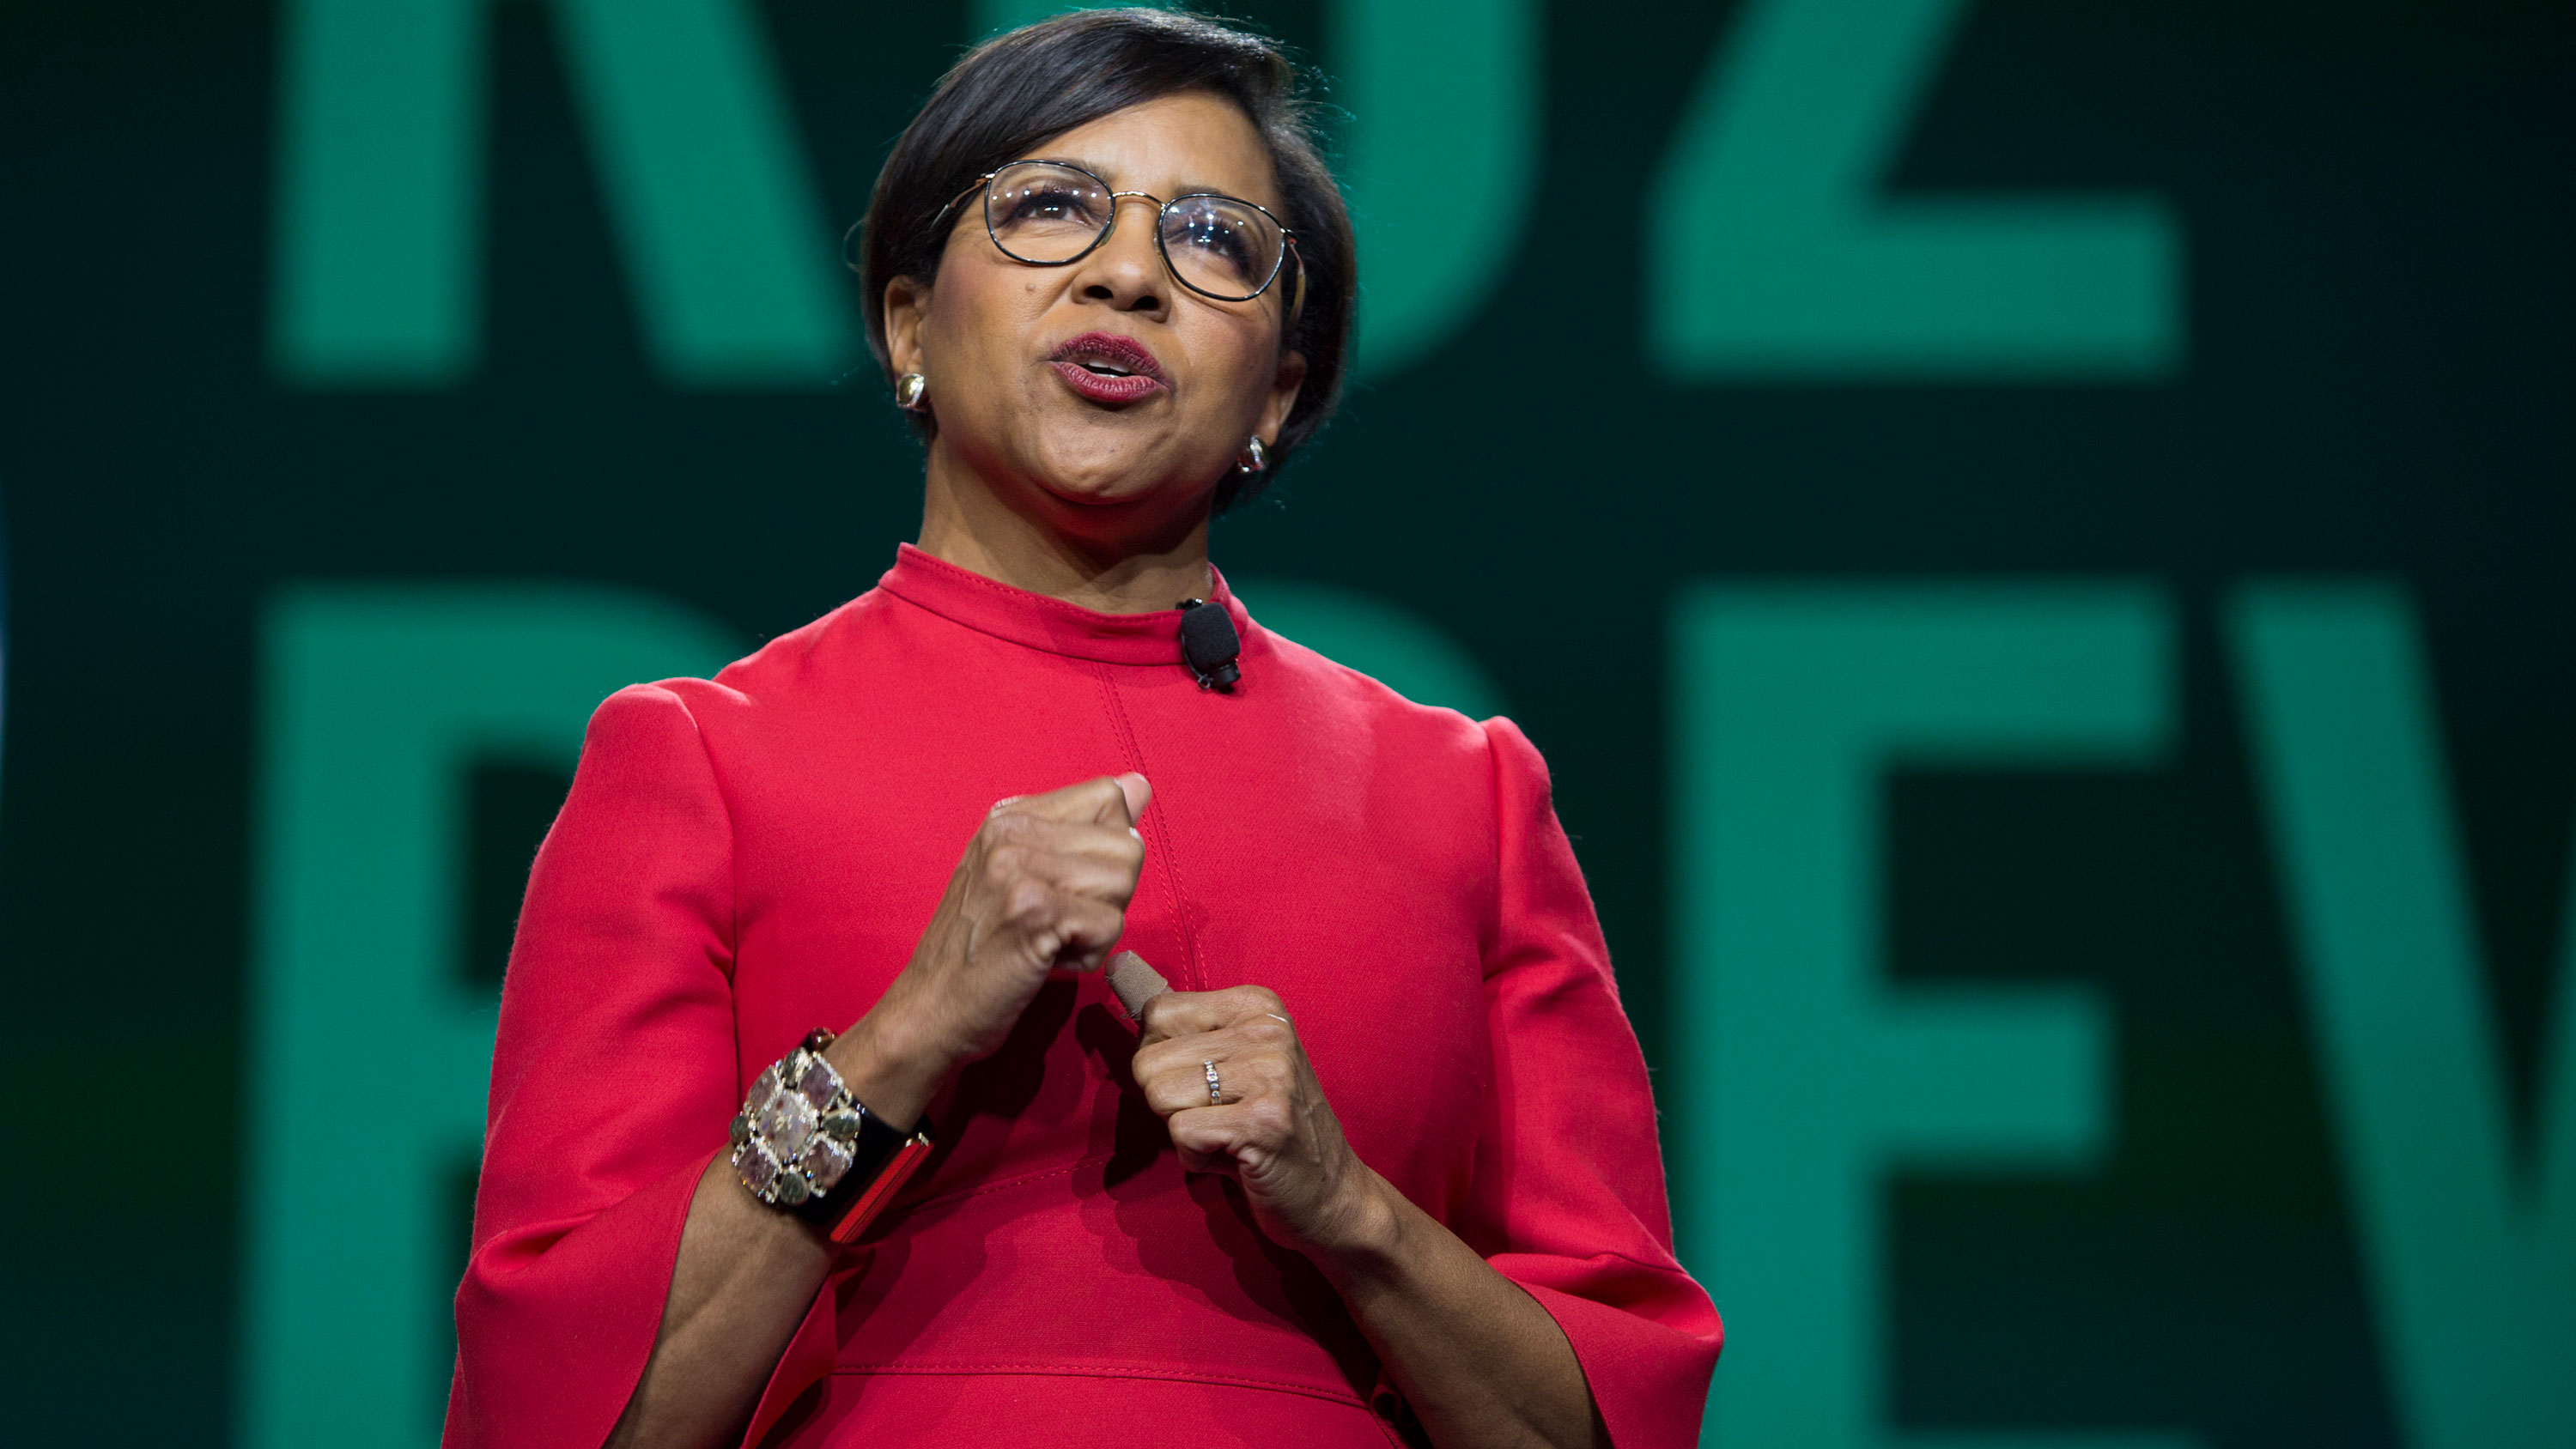 Walgreens taps Starbucks executive Rosalind Brewer to be its CEO